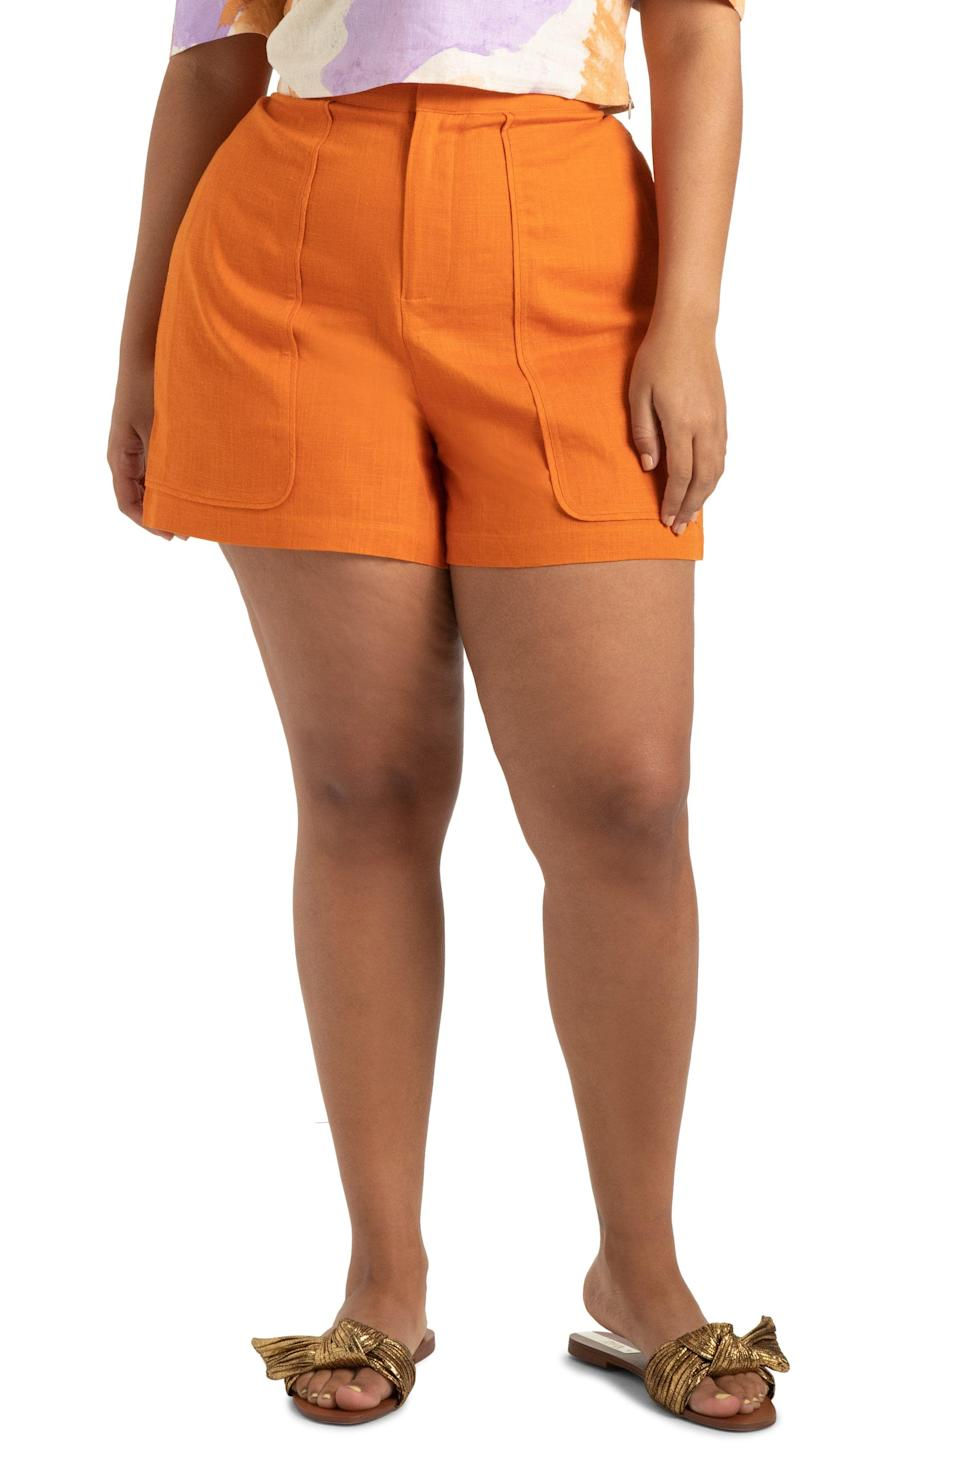 """<p><strong>ELOQUII</strong></p><p>nordstrom.com</p><p><strong>$38.98</strong></p><p><a href=""""https://go.redirectingat.com?id=74968X1596630&url=https%3A%2F%2Fwww.nordstrom.com%2Fs%2Feloquii-high-waist-shorts-plus-size%2F5903617&sref=https%3A%2F%2Fwww.thepioneerwoman.com%2Ffashion-style%2Fg36608512%2Fbest-high-waisted-shorts%2F"""" rel=""""nofollow noopener"""" target=""""_blank"""" data-ylk=""""slk:Shop Now"""" class=""""link rapid-noclick-resp"""">Shop Now</a></p><p>How gorgeous is this orange hue? It's called Hawaiian Sunset and it gives us instant vacation vibes. This plus-size pair features a tailored silhouette, roomy front patch pockets, and a back elastic waist for a just-right fit. </p>"""